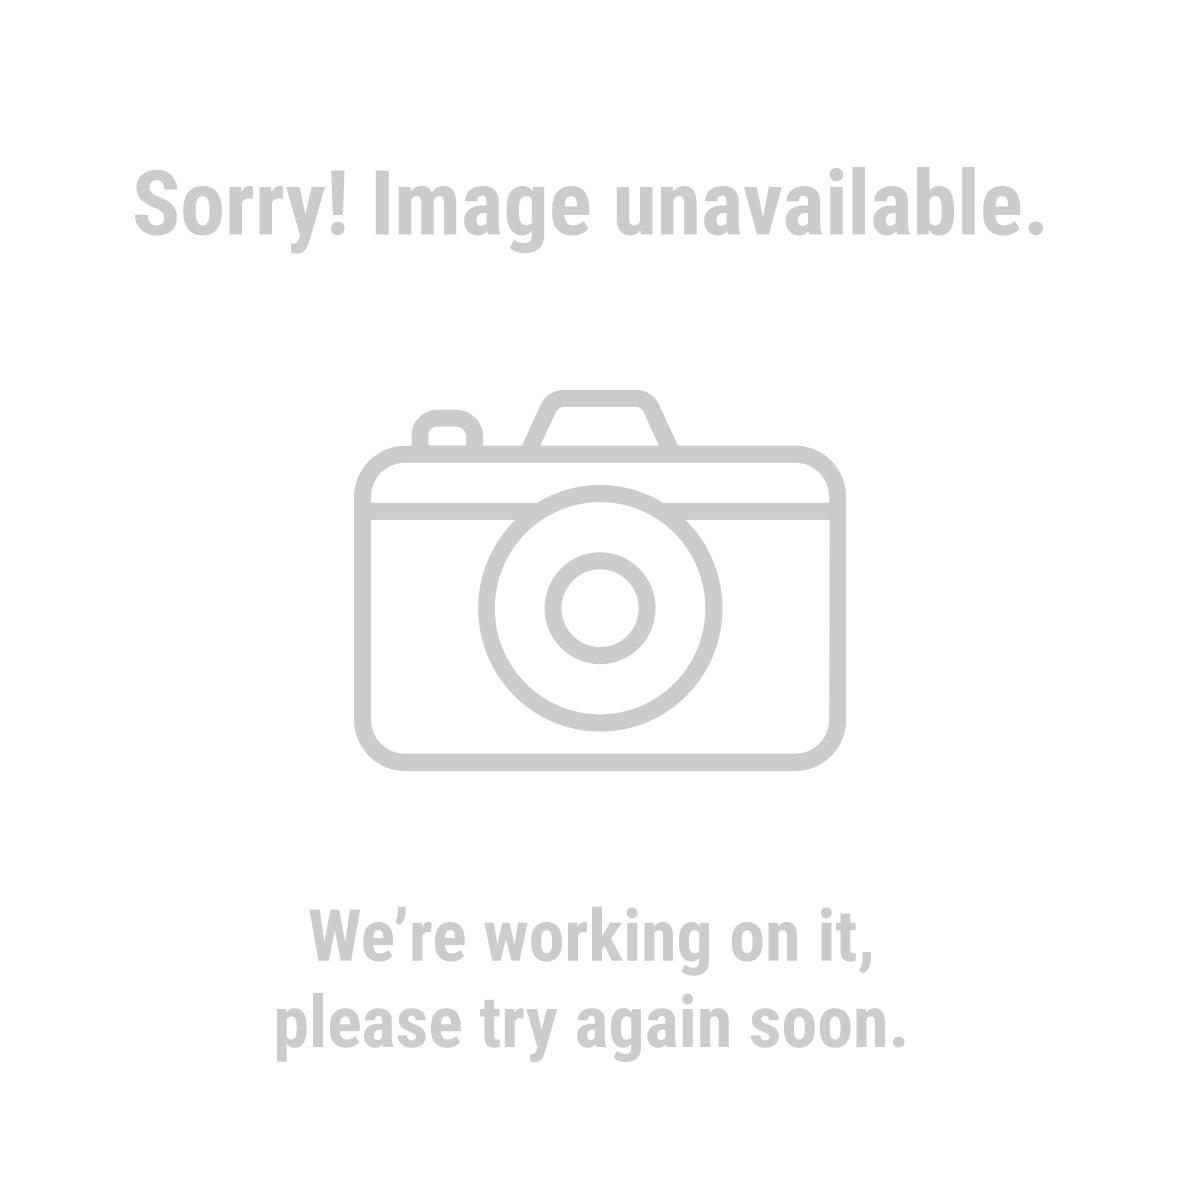 Pittsburgh® 35439 3 Piece High Voltage Electrician's Pliers